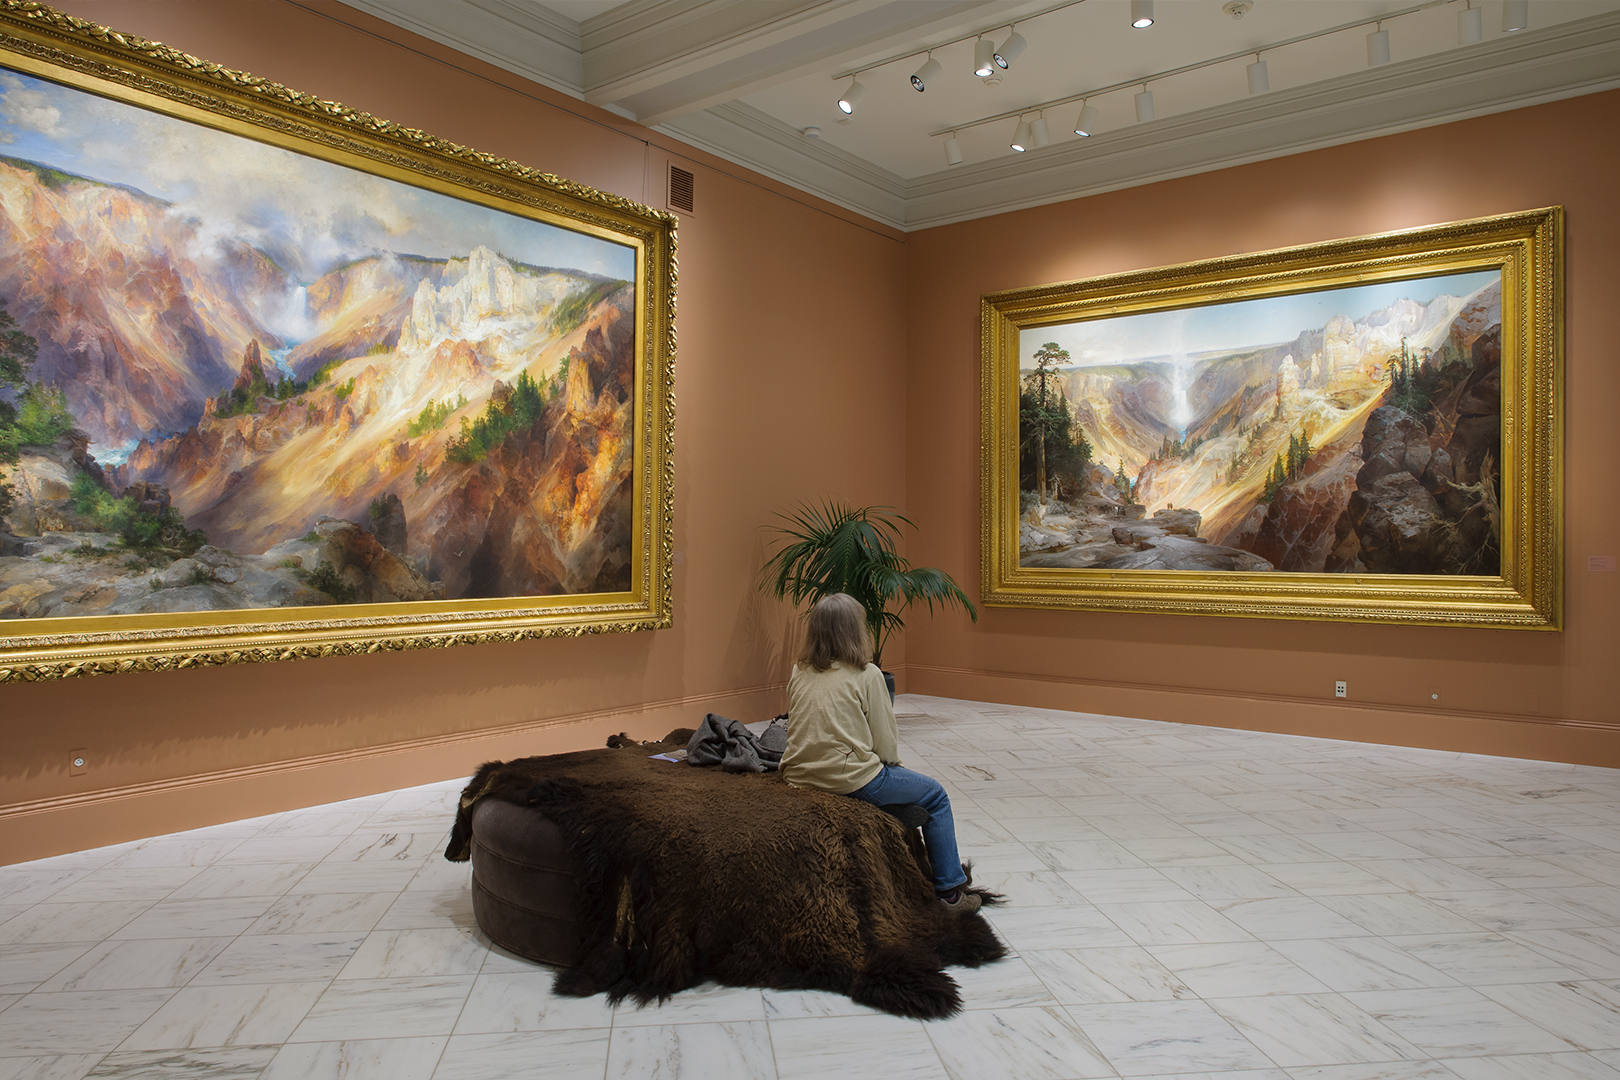 The Grand Canyon of the Yellowstone by Thomas Moran, 1872 & 1893, Smithsonian American Art Museum, Washington, D.C.